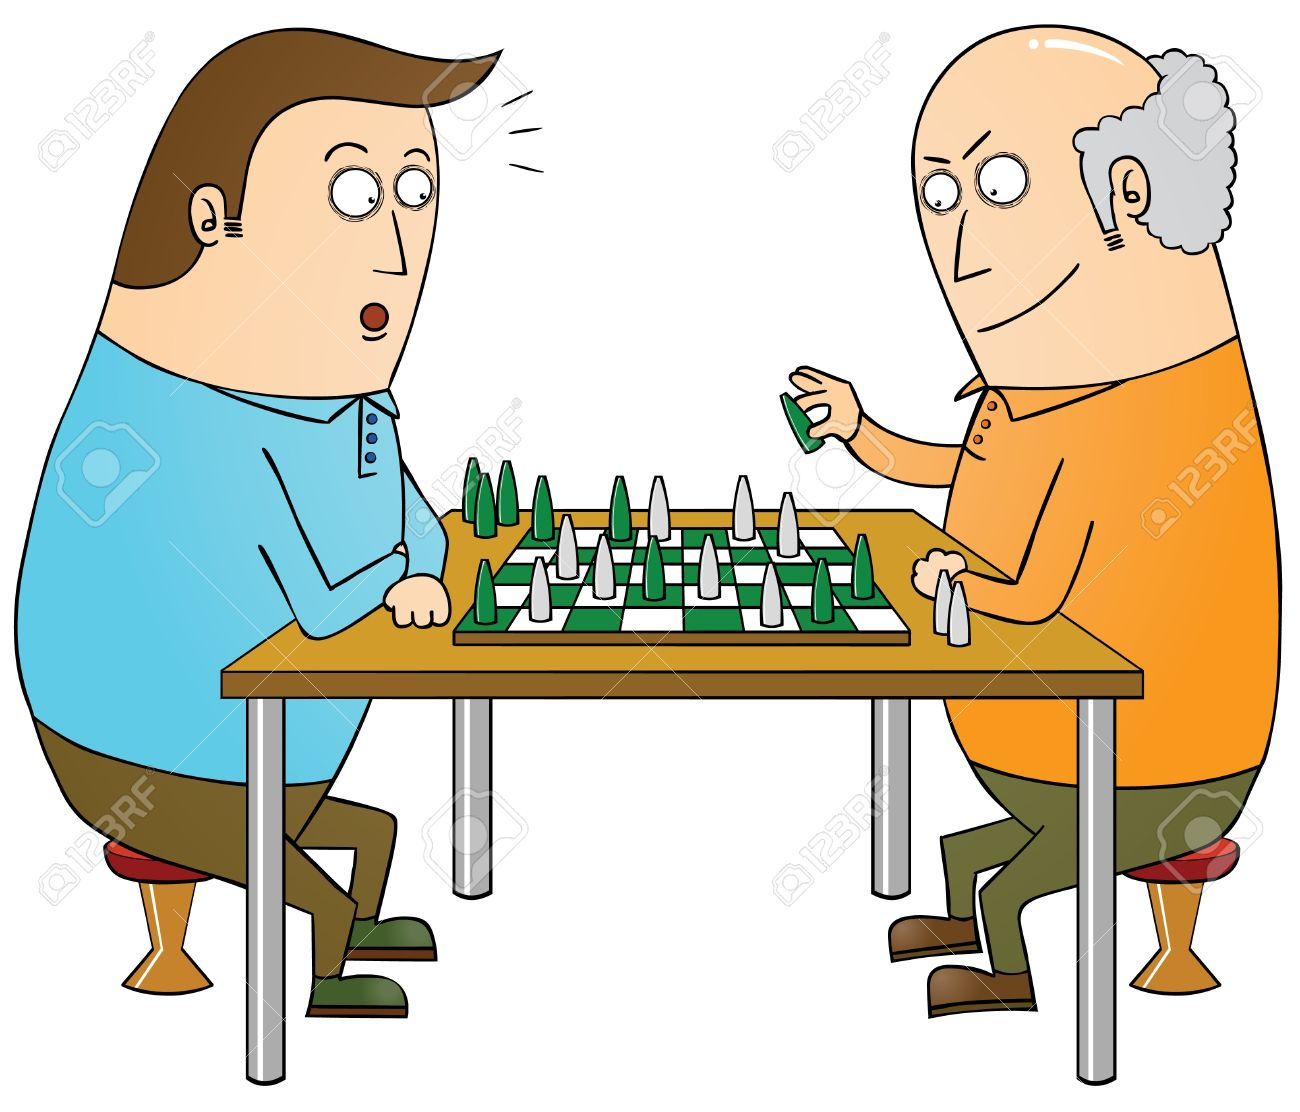 Chess Master Royalty Free Cliparts, Vectors, And Stock.